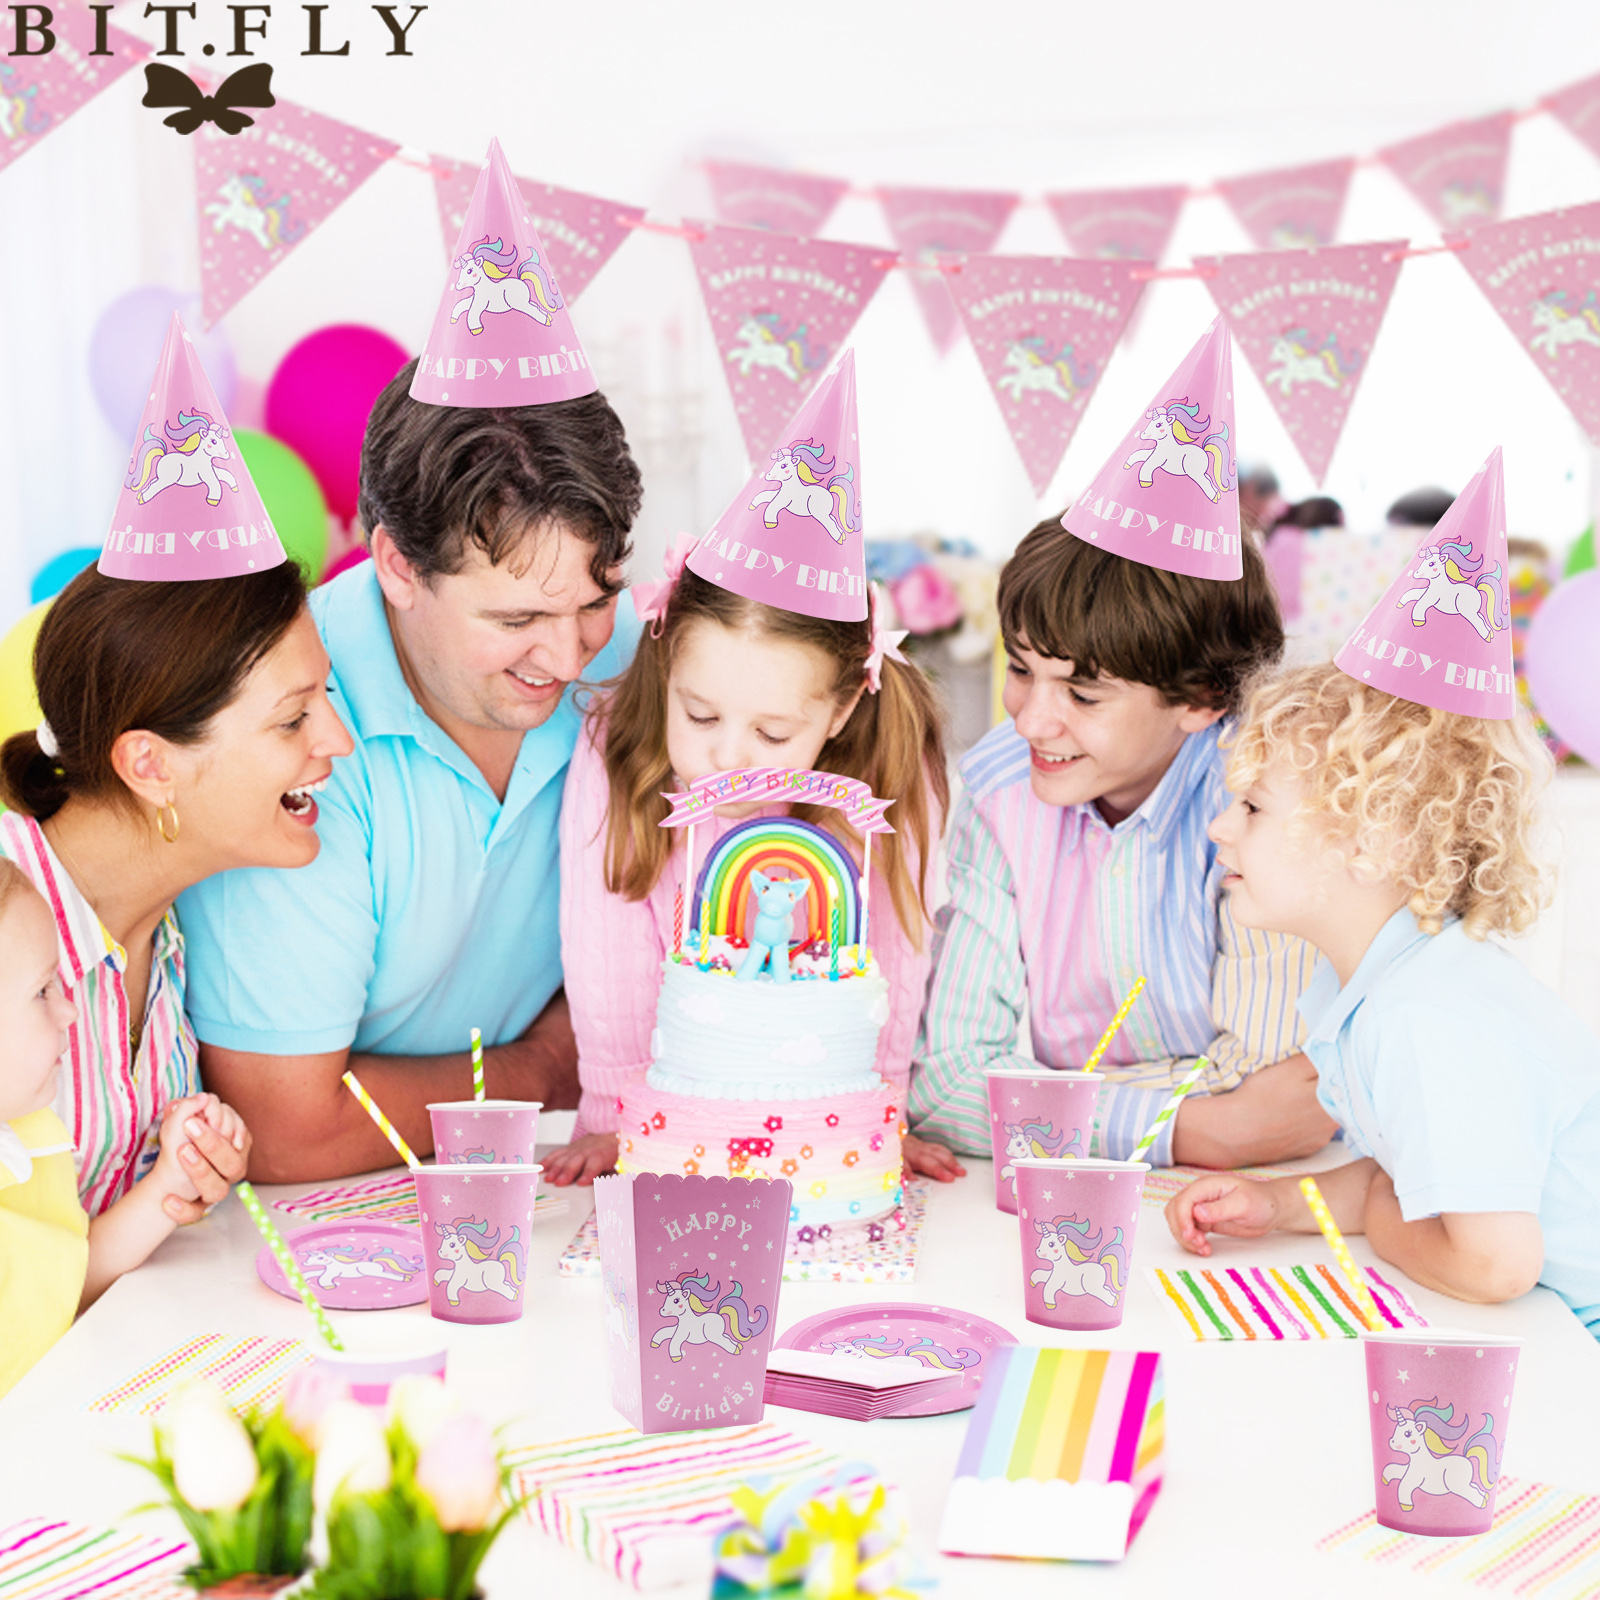 BIT.FLY Happy Birthday Disposable Unicorn Tableware Set Kids Birthday Party Home Party Unicorn Paper Cup Banners Party DIY Decor